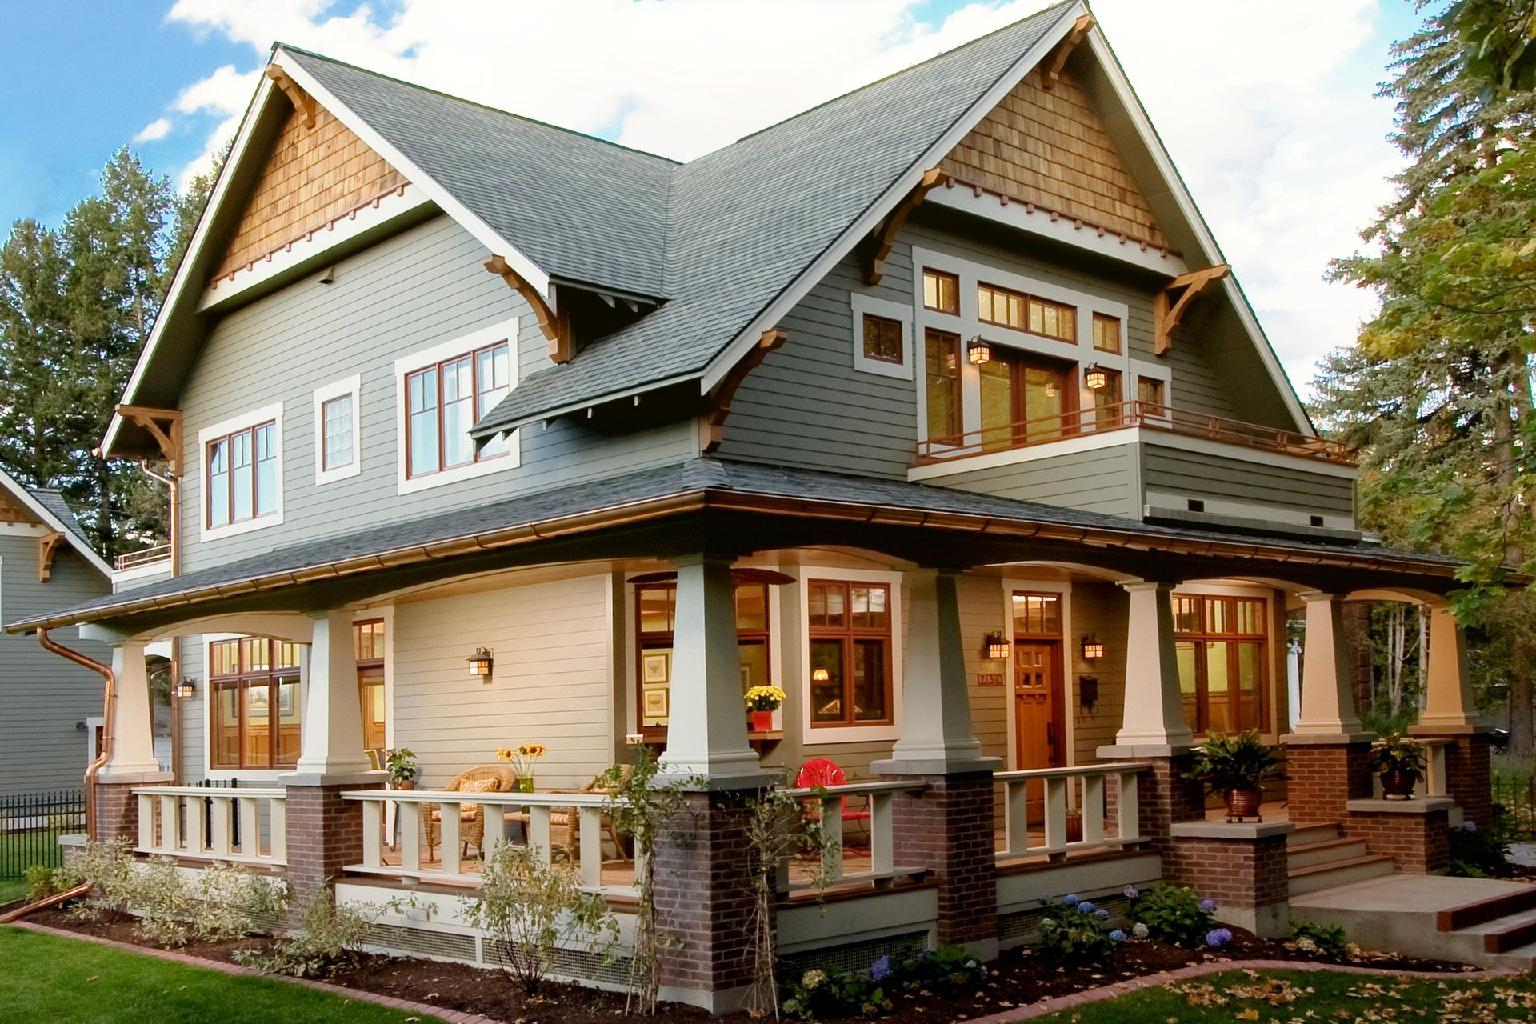 21 Craftsman Style House Ideas With Bedroom And Kitchen Included